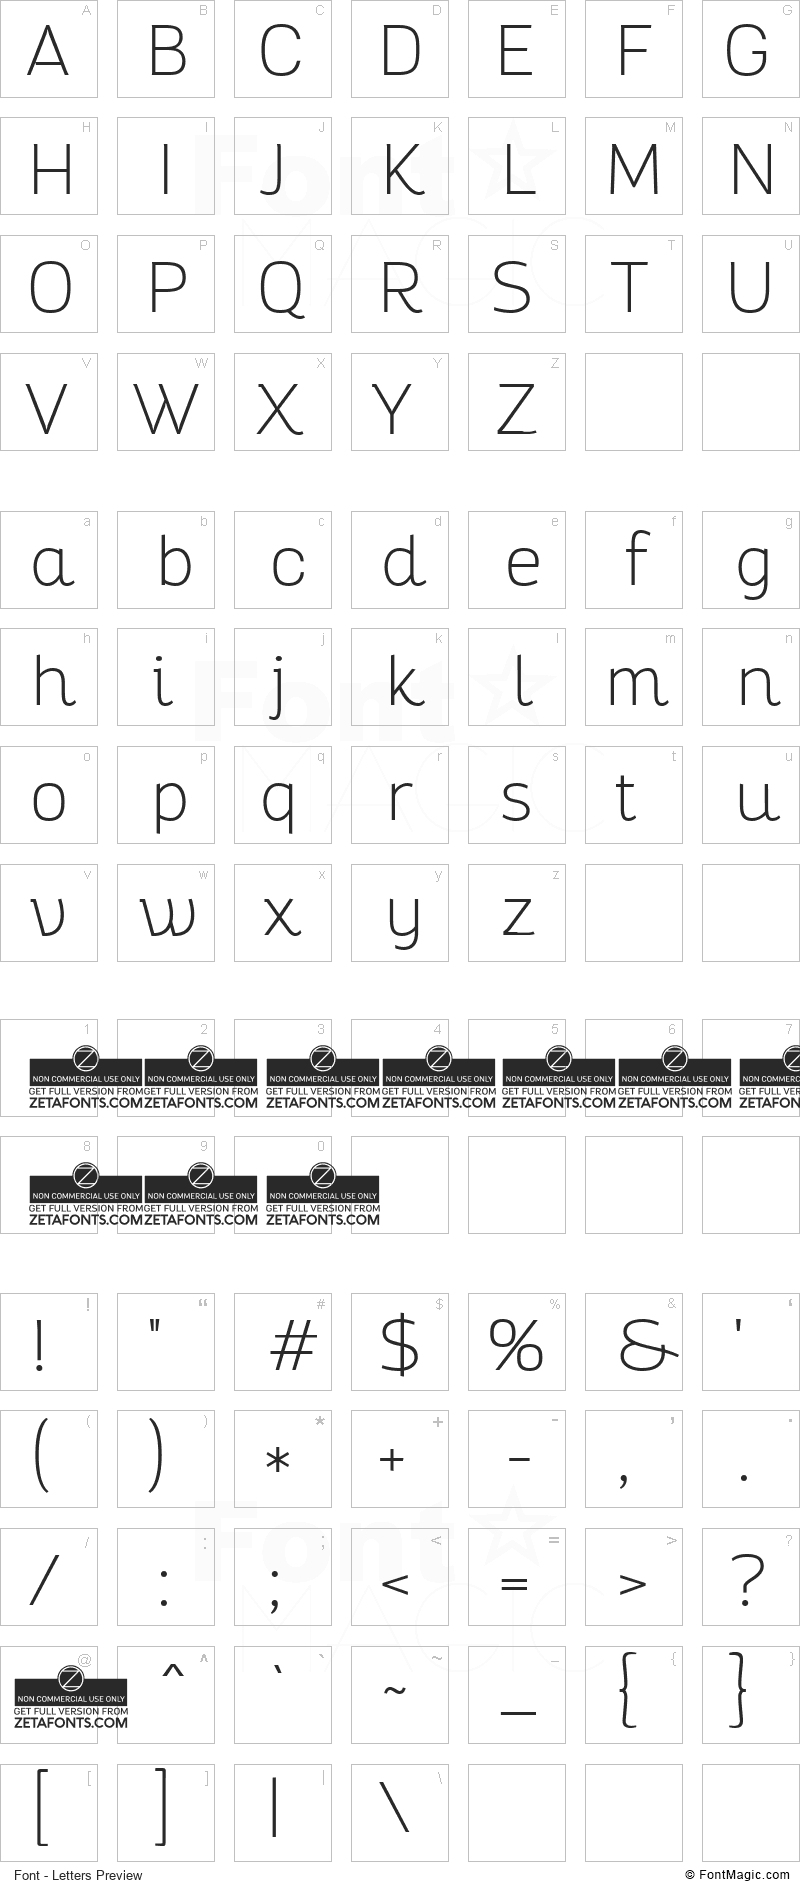 Altair Font - All Latters Preview Chart